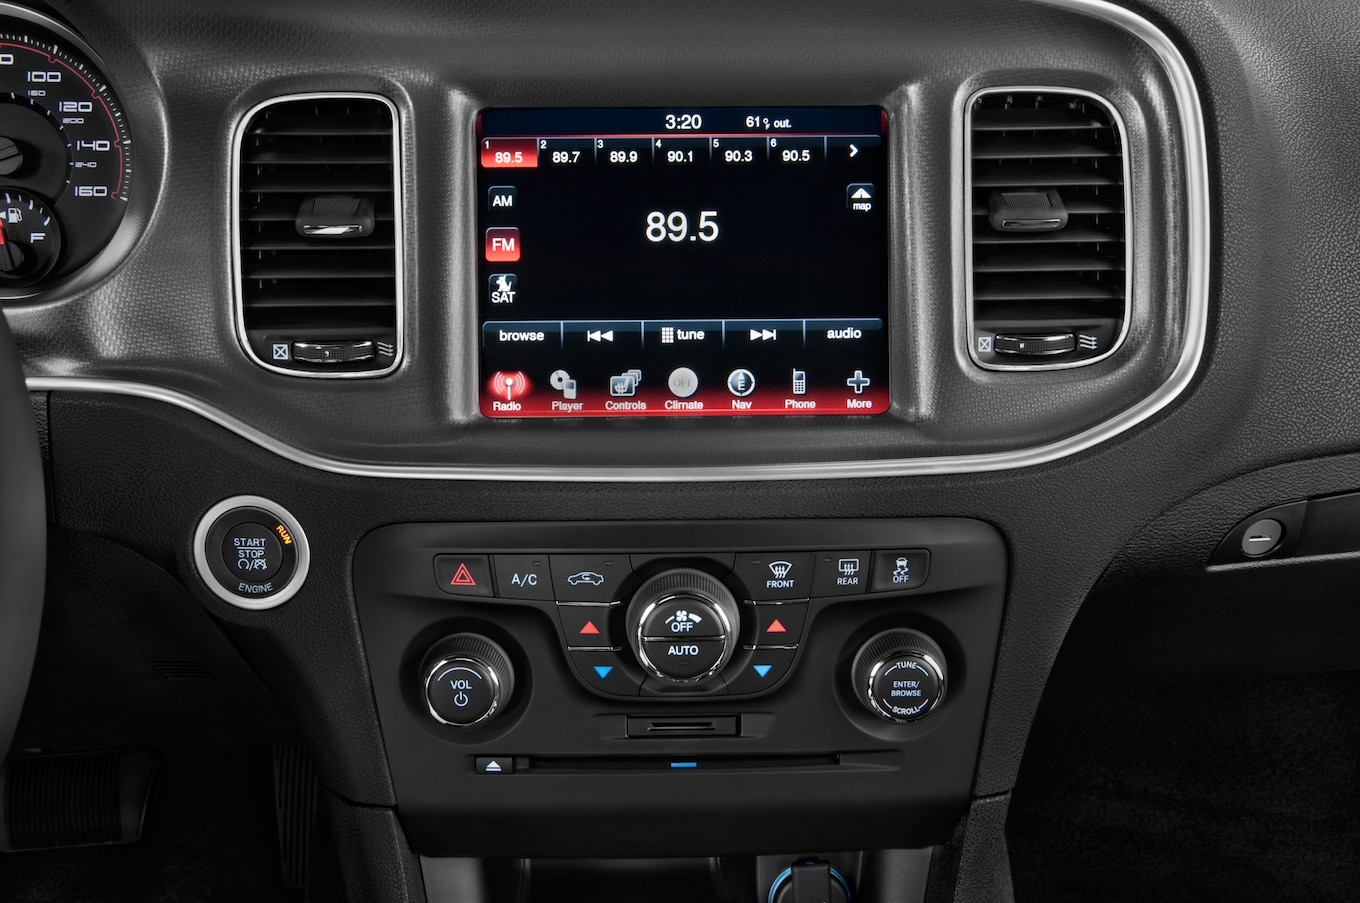 2006 Hemi Engine Wiring Diagram 2014 Dodge Charger Reviews Research Charger Prices